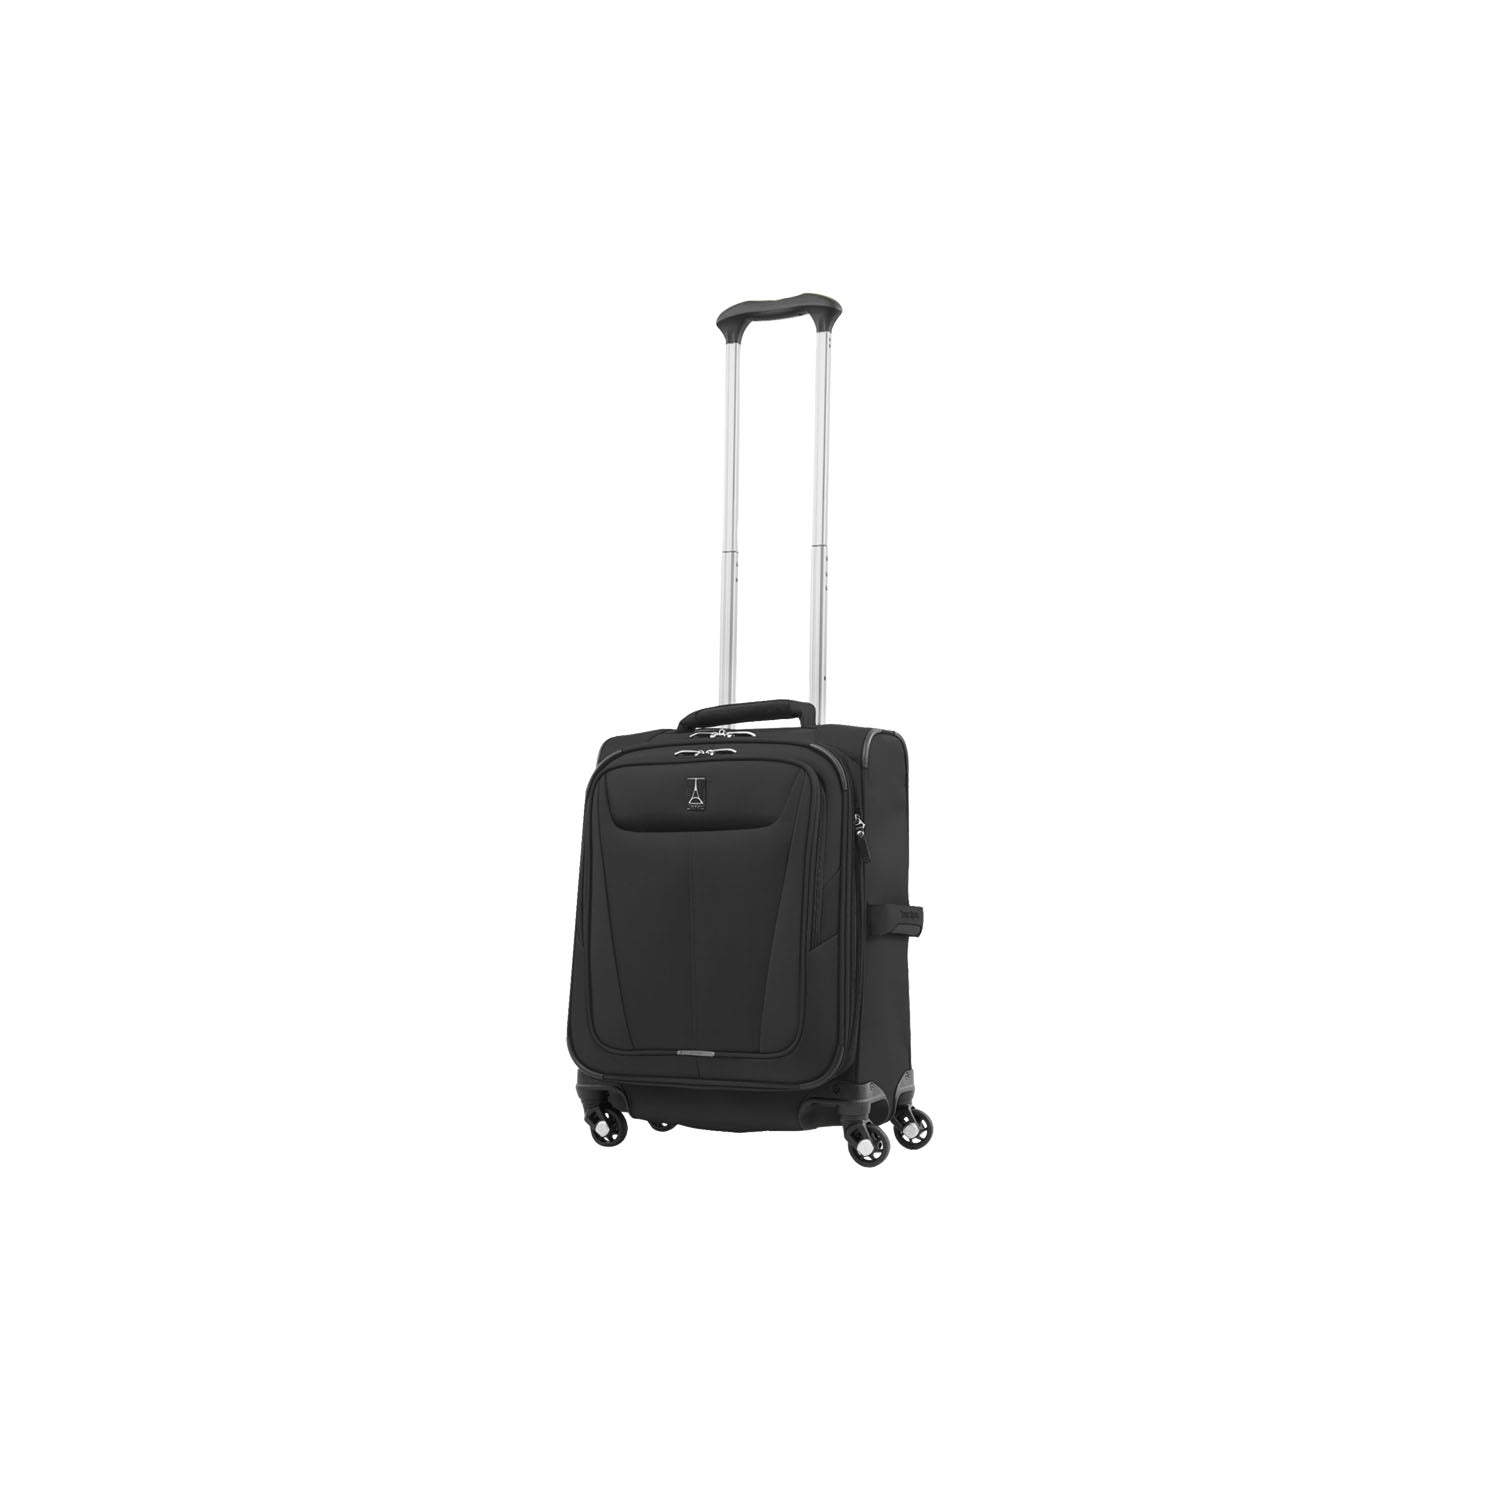 Maxlite® 5 International Expandable Carry-On Spinner